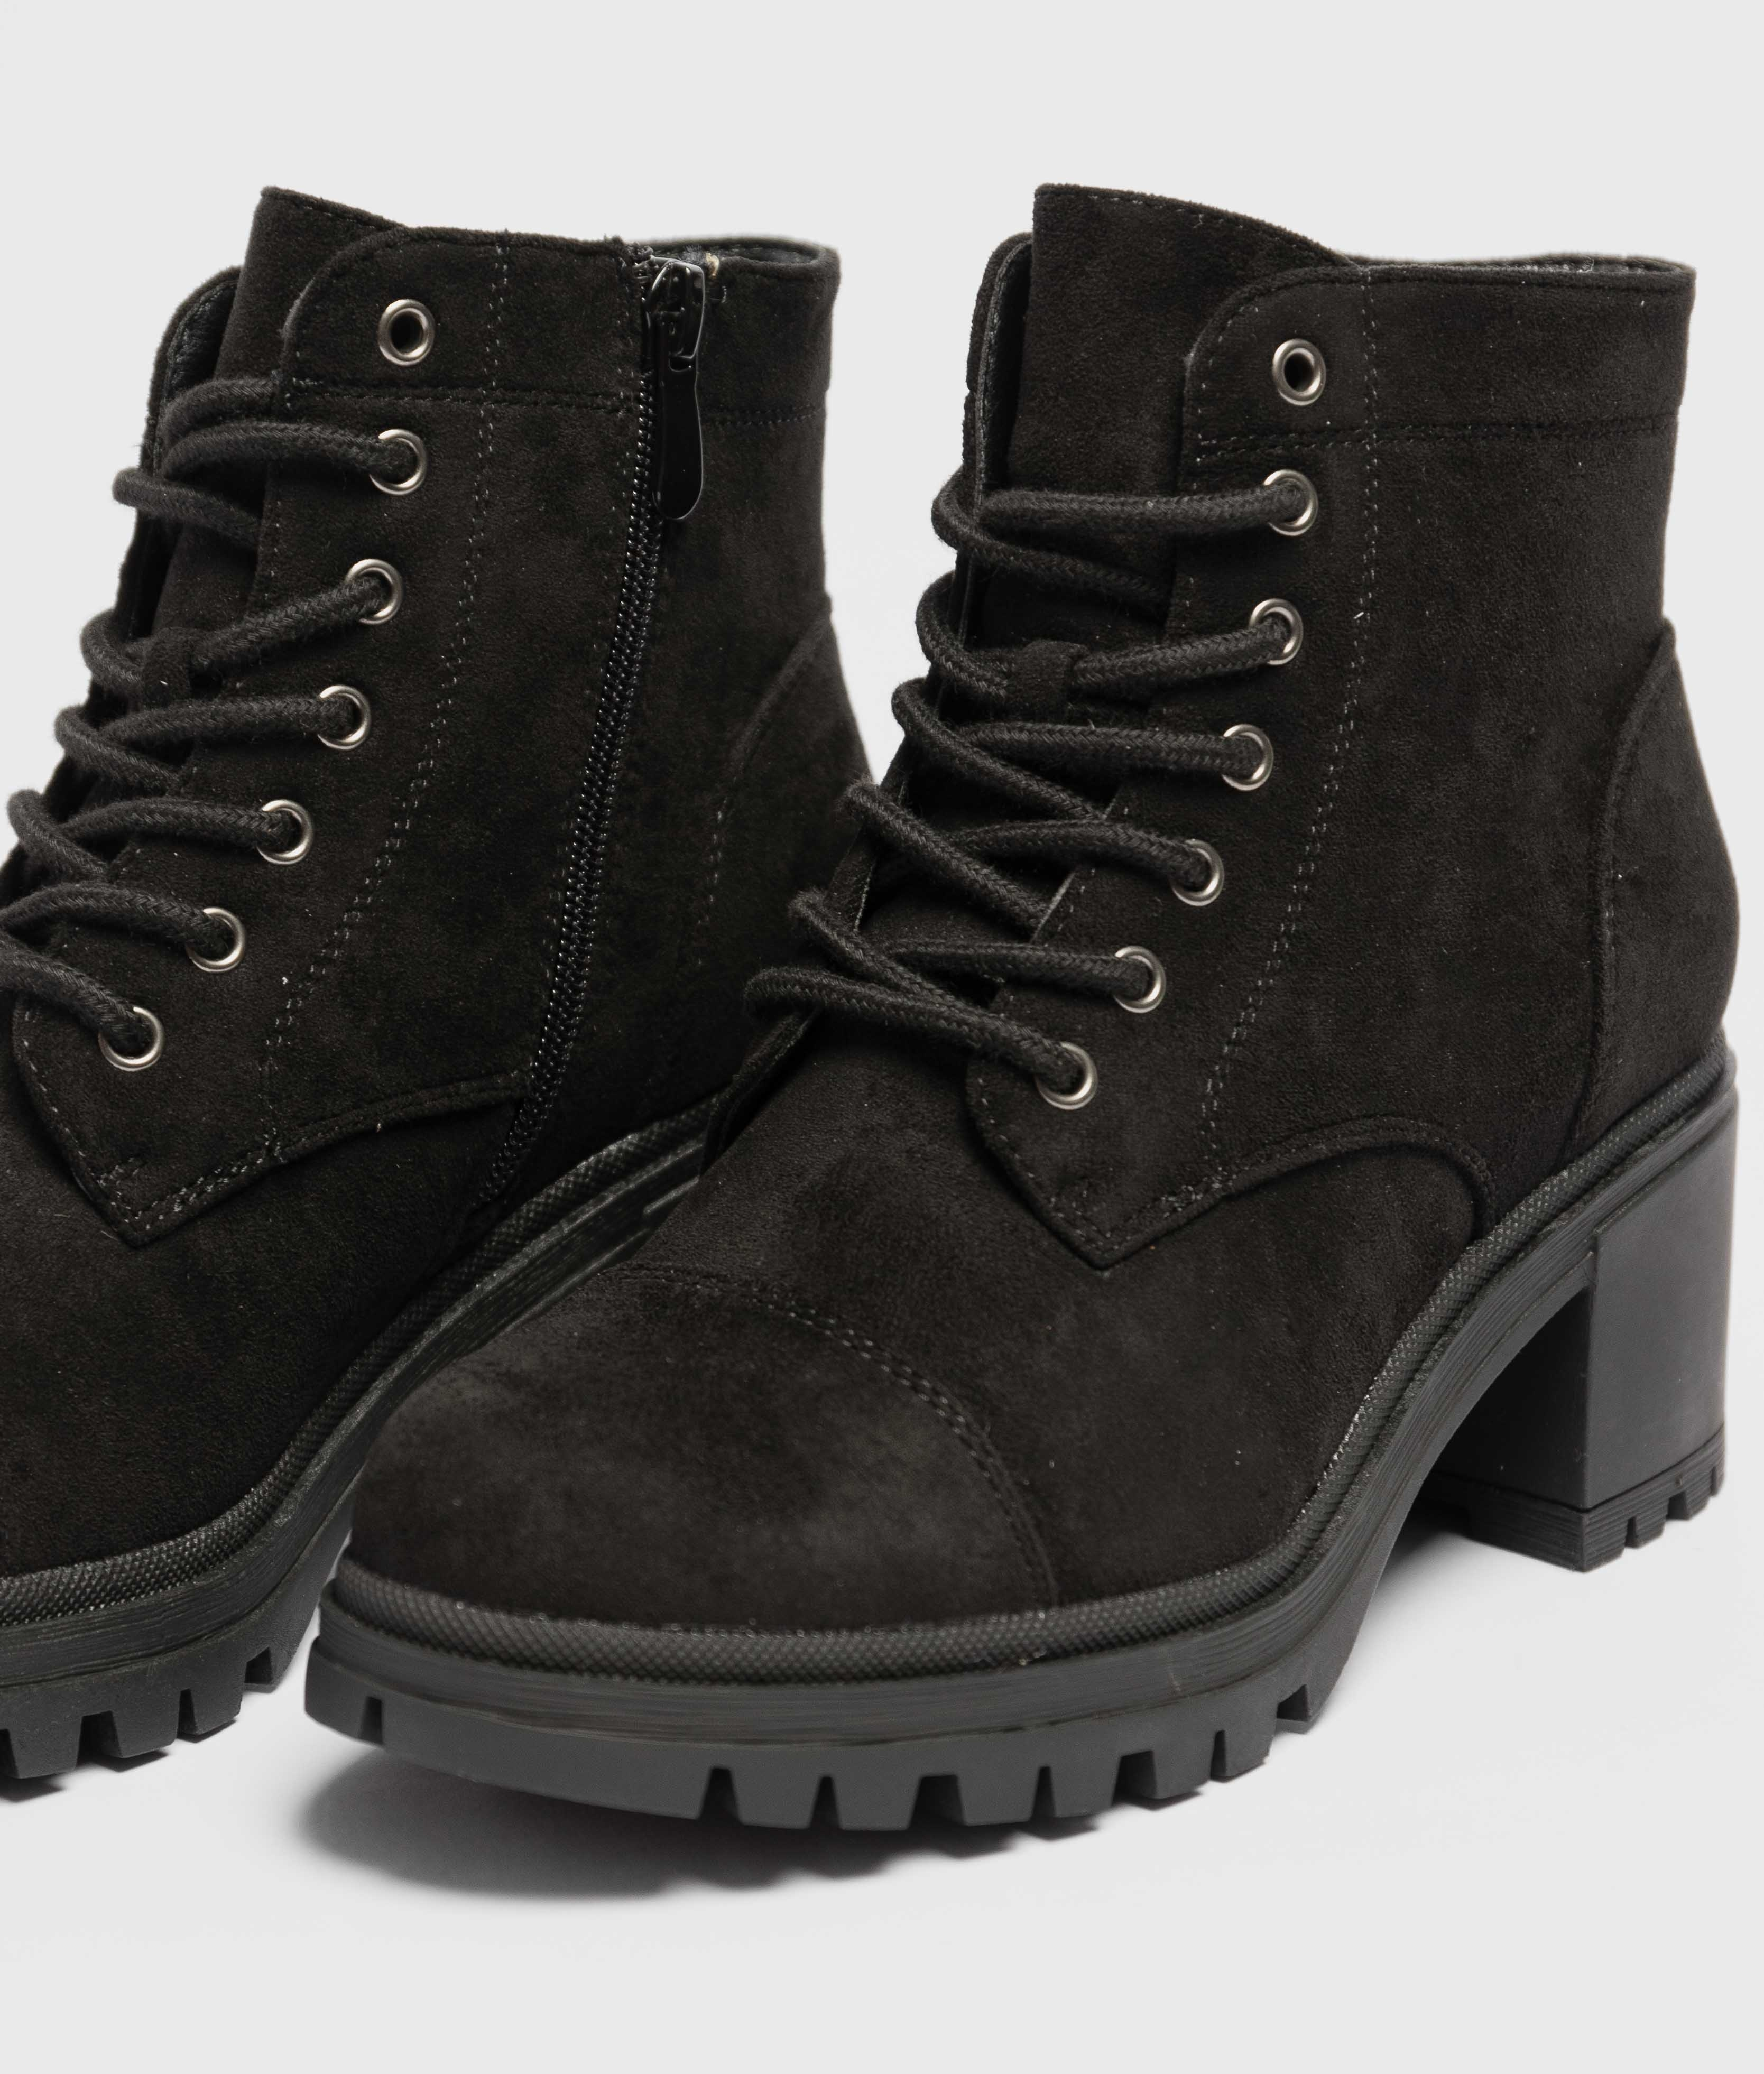 Low Boot Amica - Black Suede